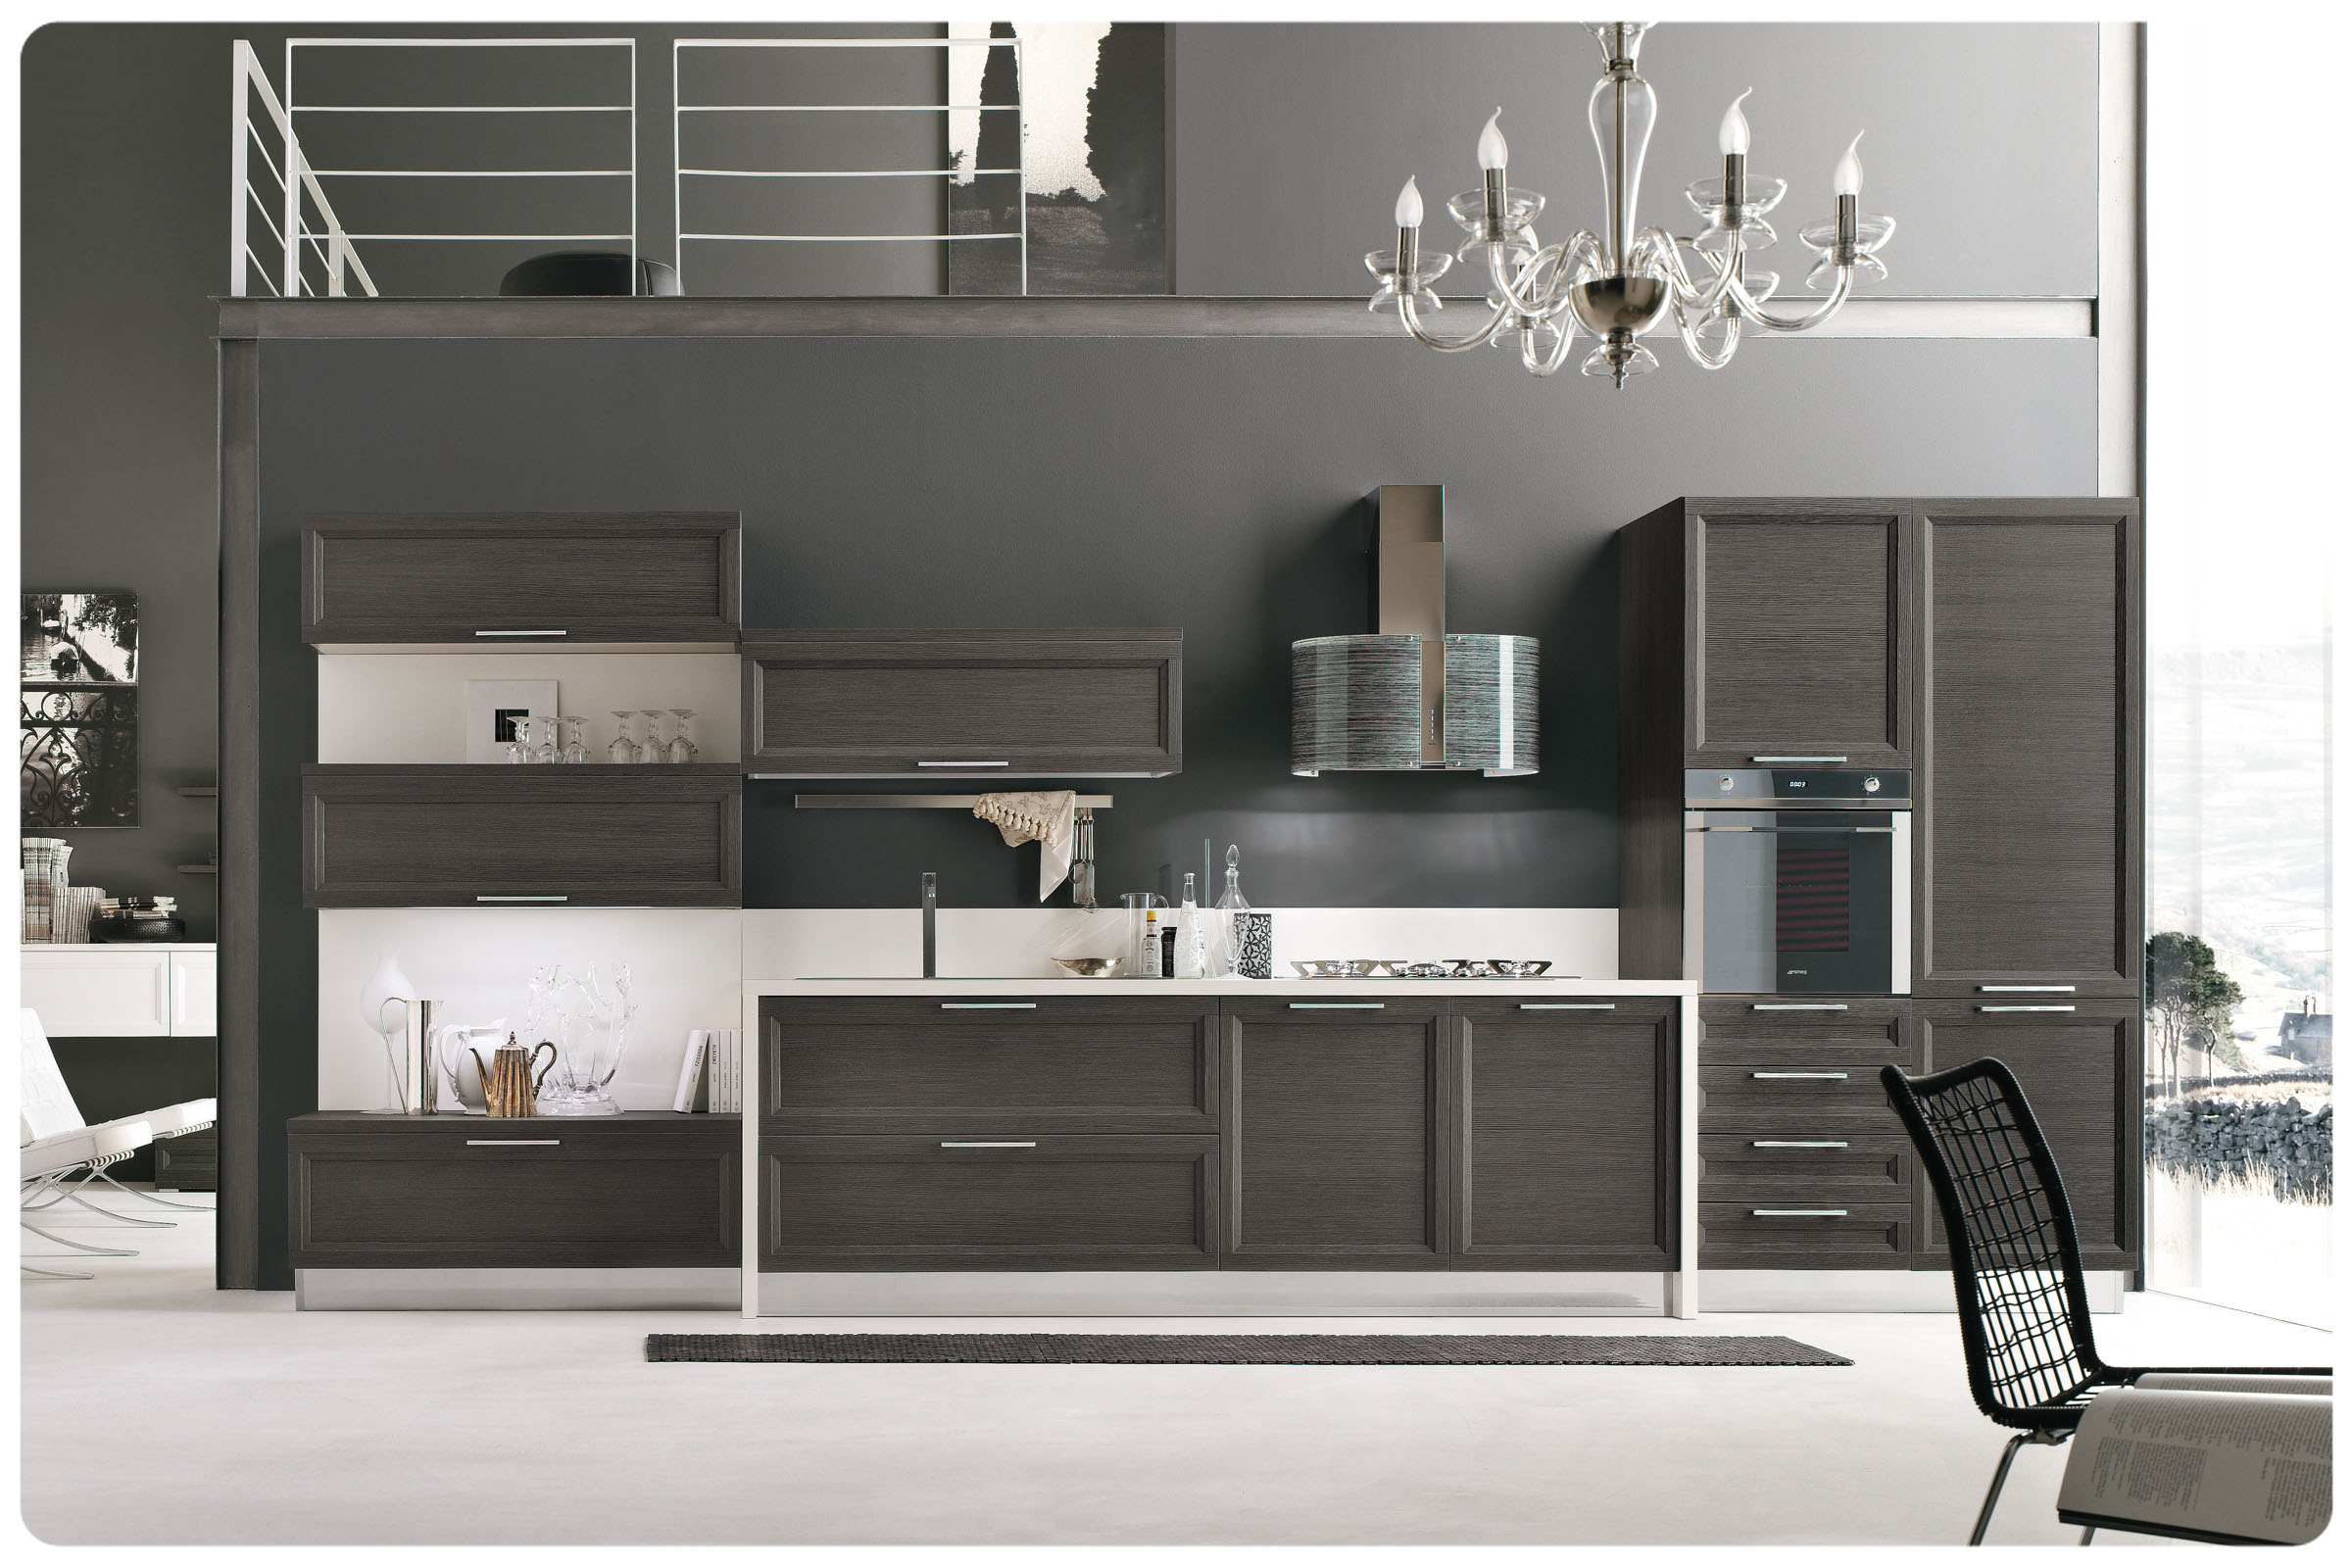 Cucine outlet milano cucine moderne componibili lube for Cucine usate gratis milano